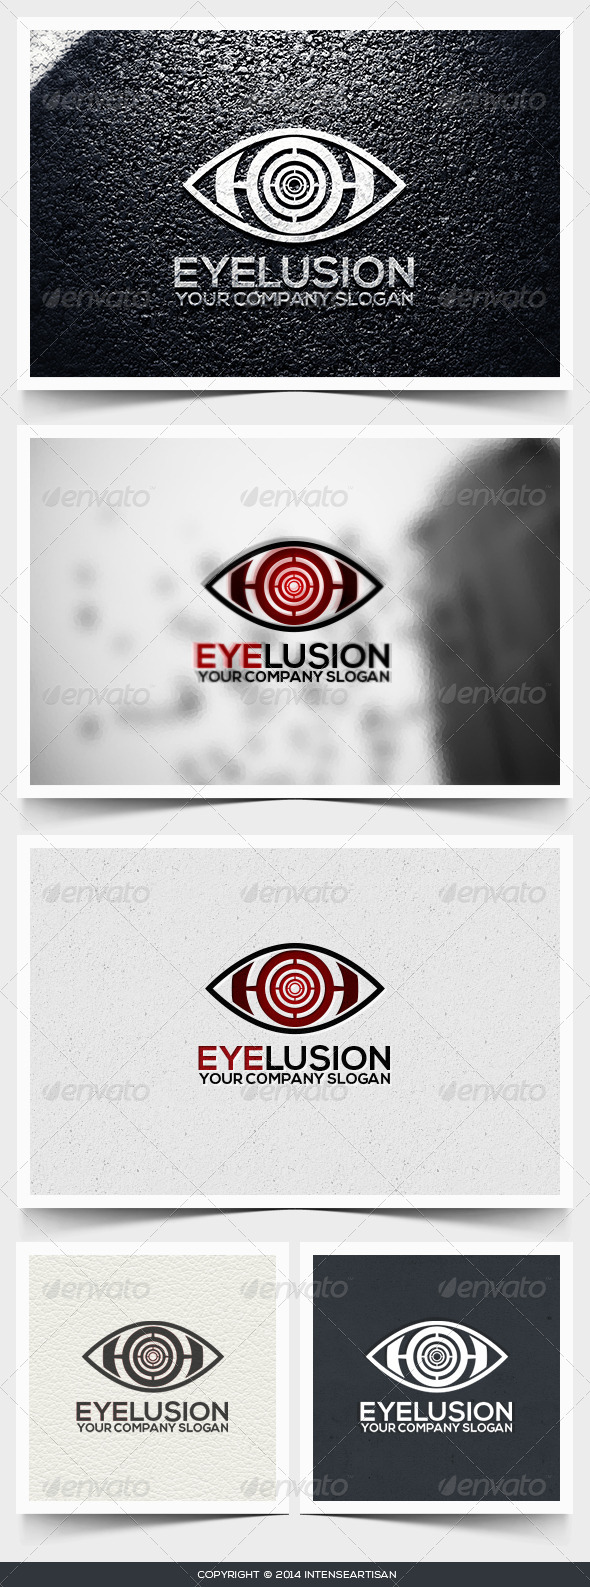 Eyelusion Logo Template - Objects Logo Templates